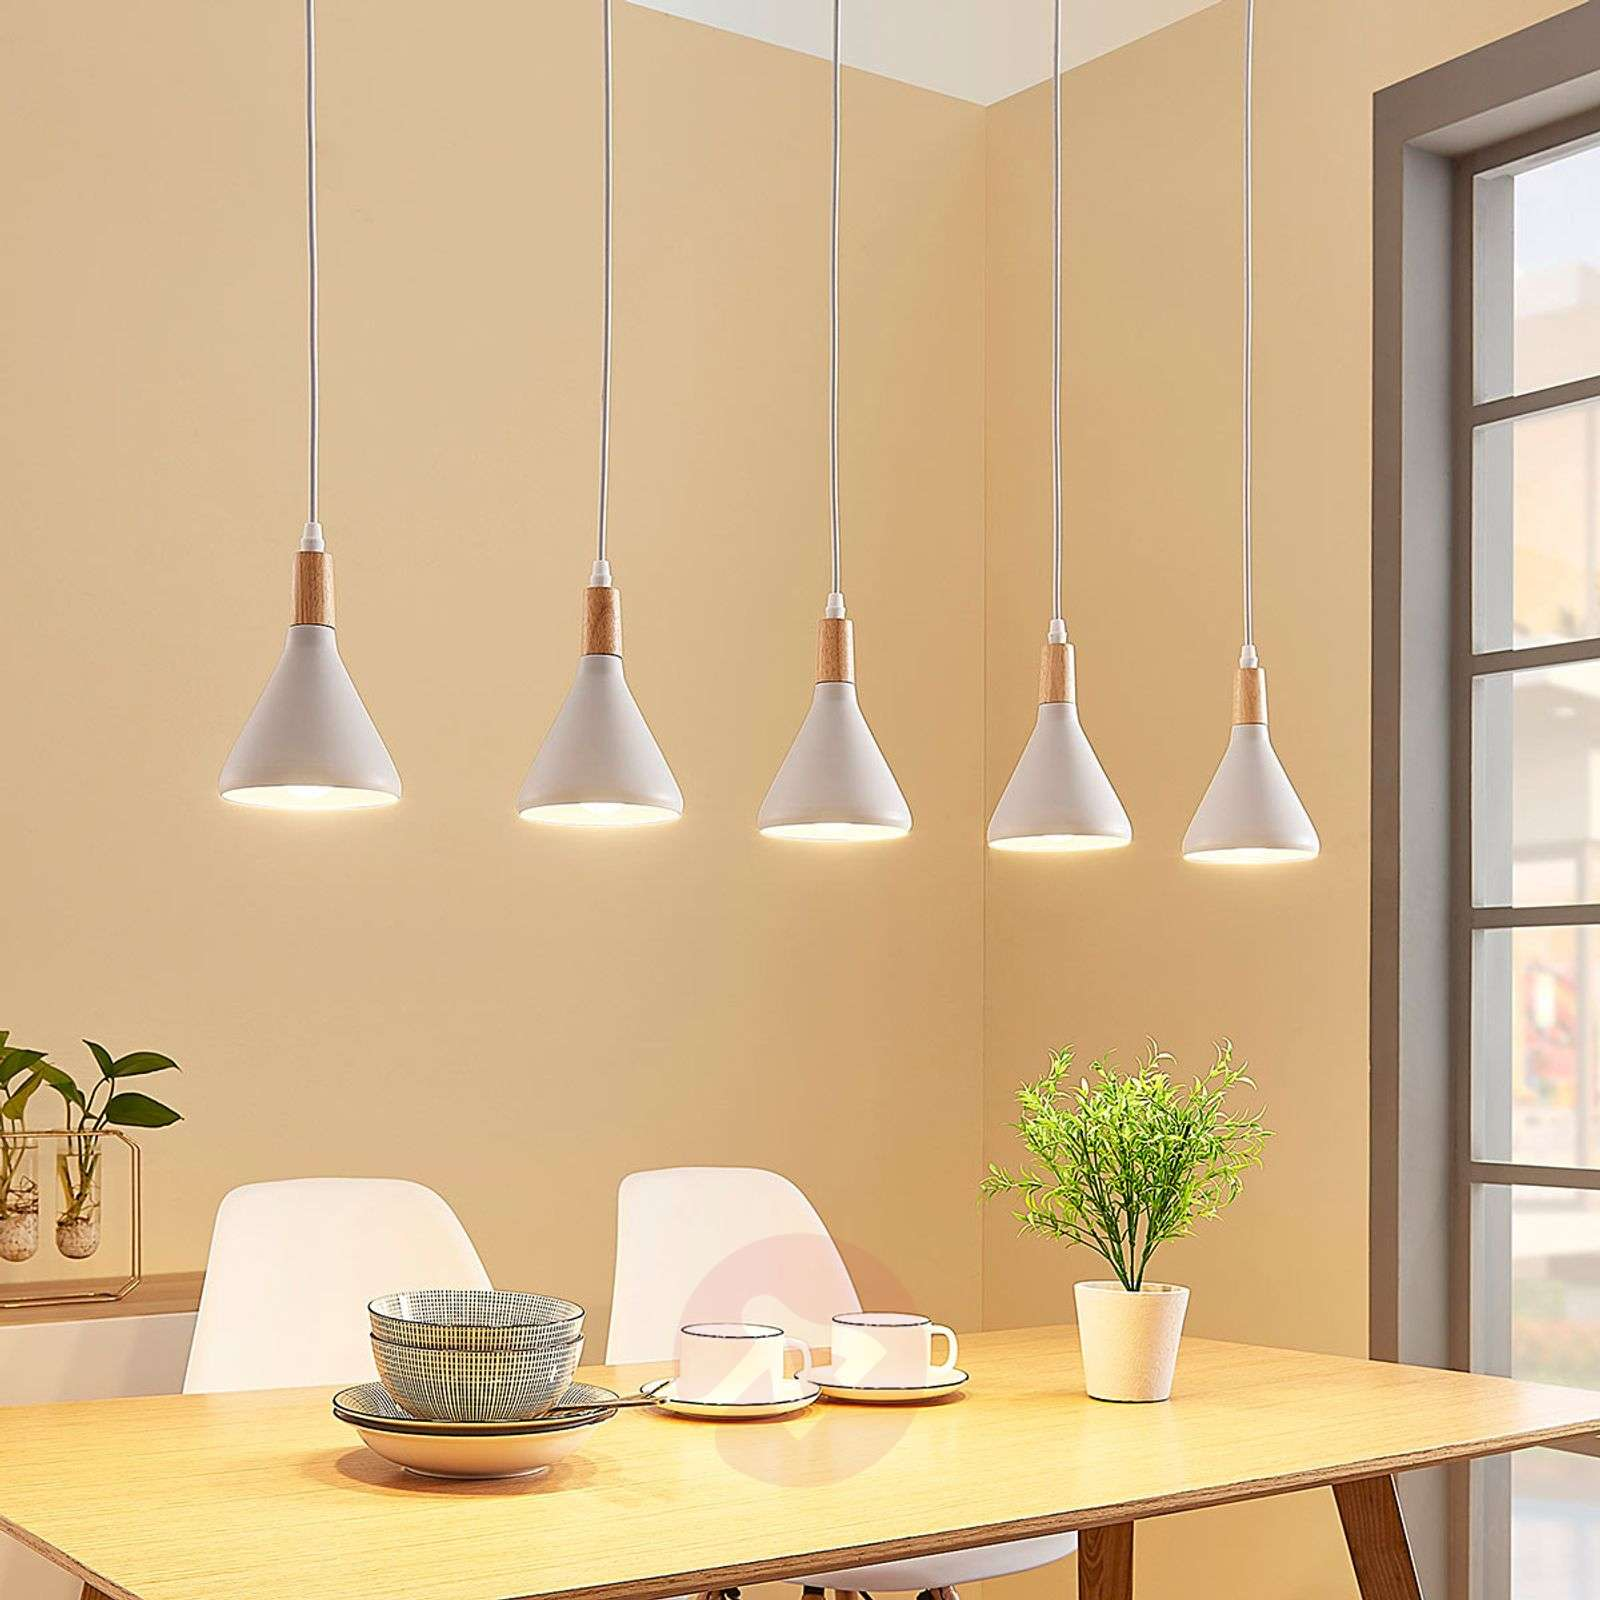 Led Lampes En Suspension 5 Arina À Blanc 7yY6gbfv